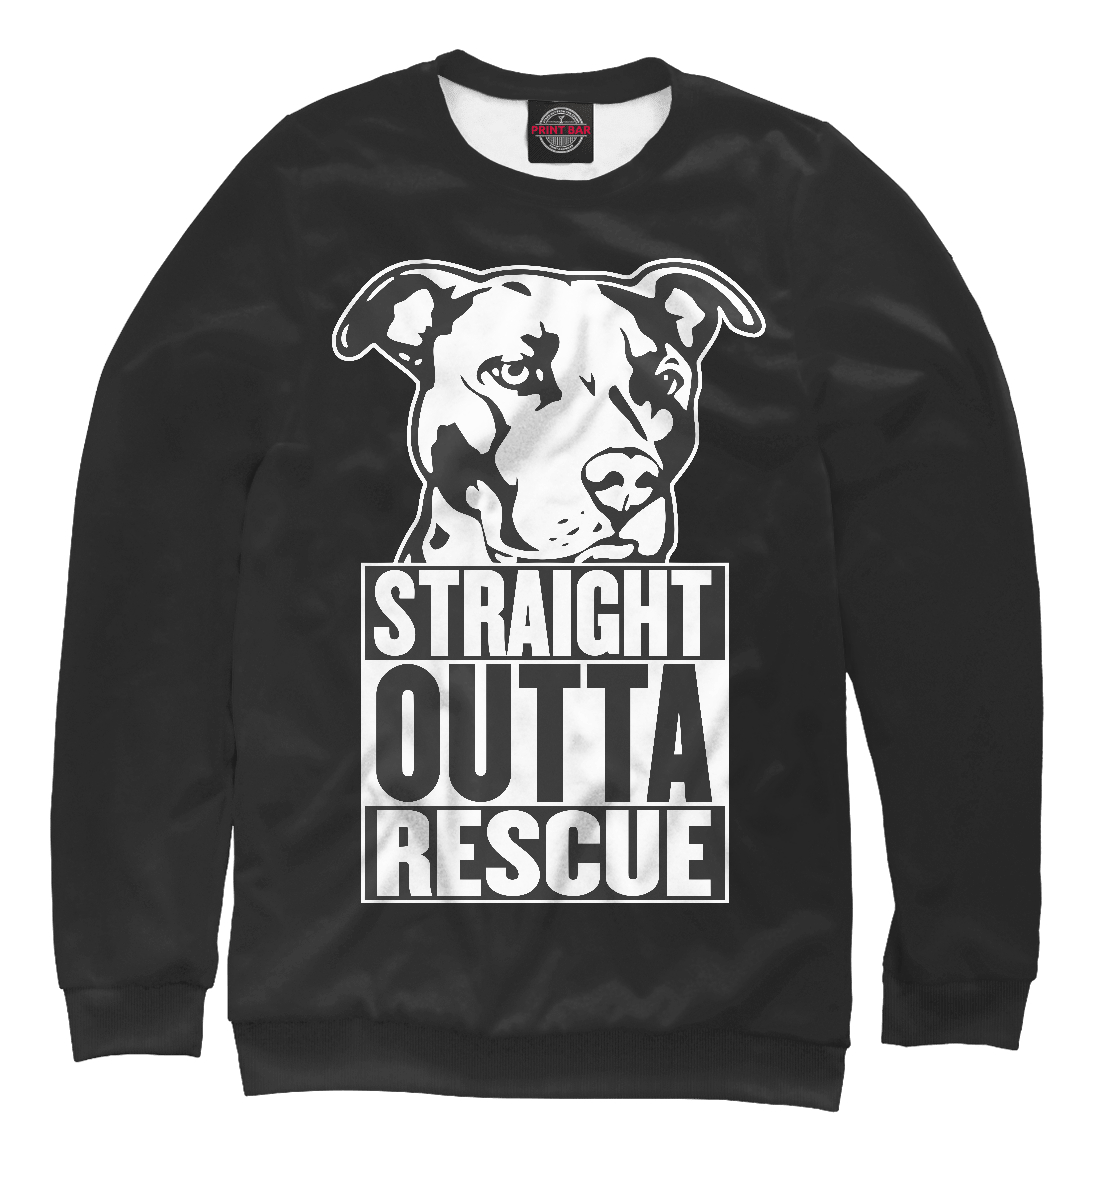 Купить Straight Outta Rescue, Printbar, Свитшоты, DOG-944152-swi-2